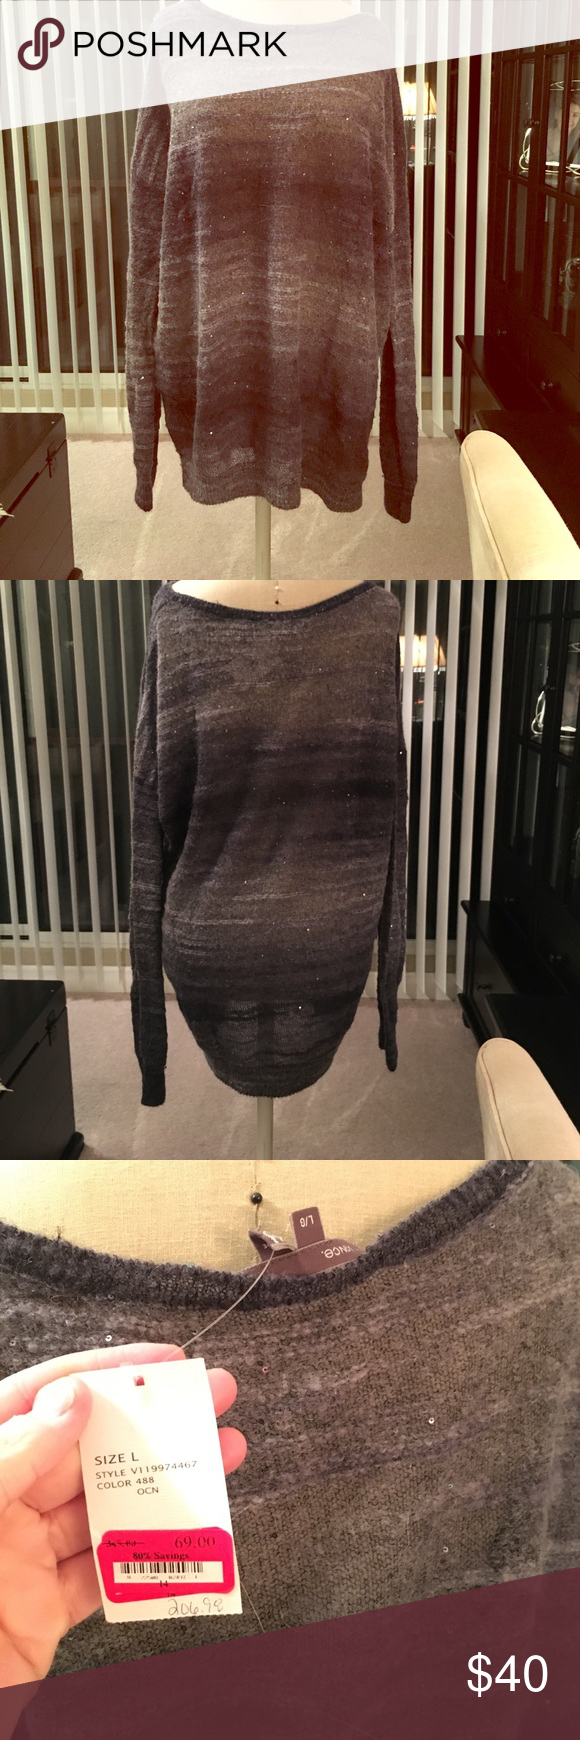 Vince dark grey and light grey sweater BRAND NEW NEVER WORN Vince Sweater. This is 31% wool and very cute with either jeans or leggings. Vince Sweaters Crew & Scoop Necks